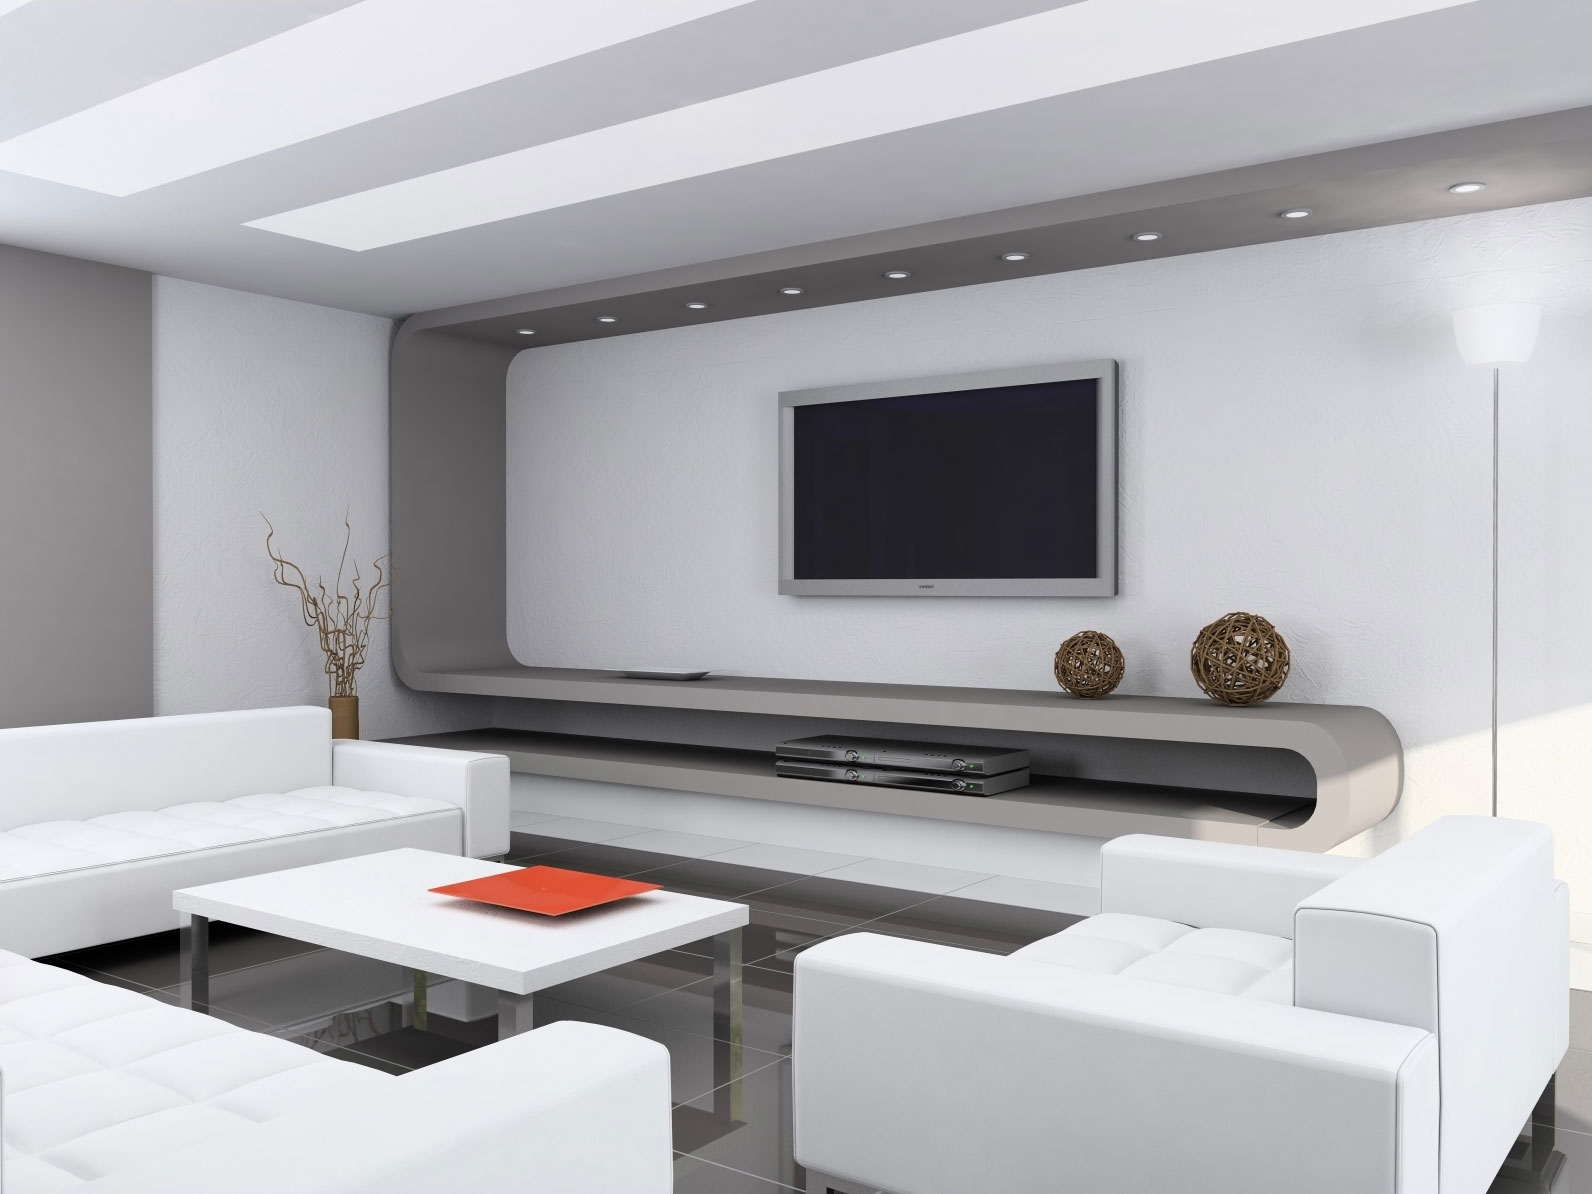 Designnu2: Home Design With Minimalist Interior Design